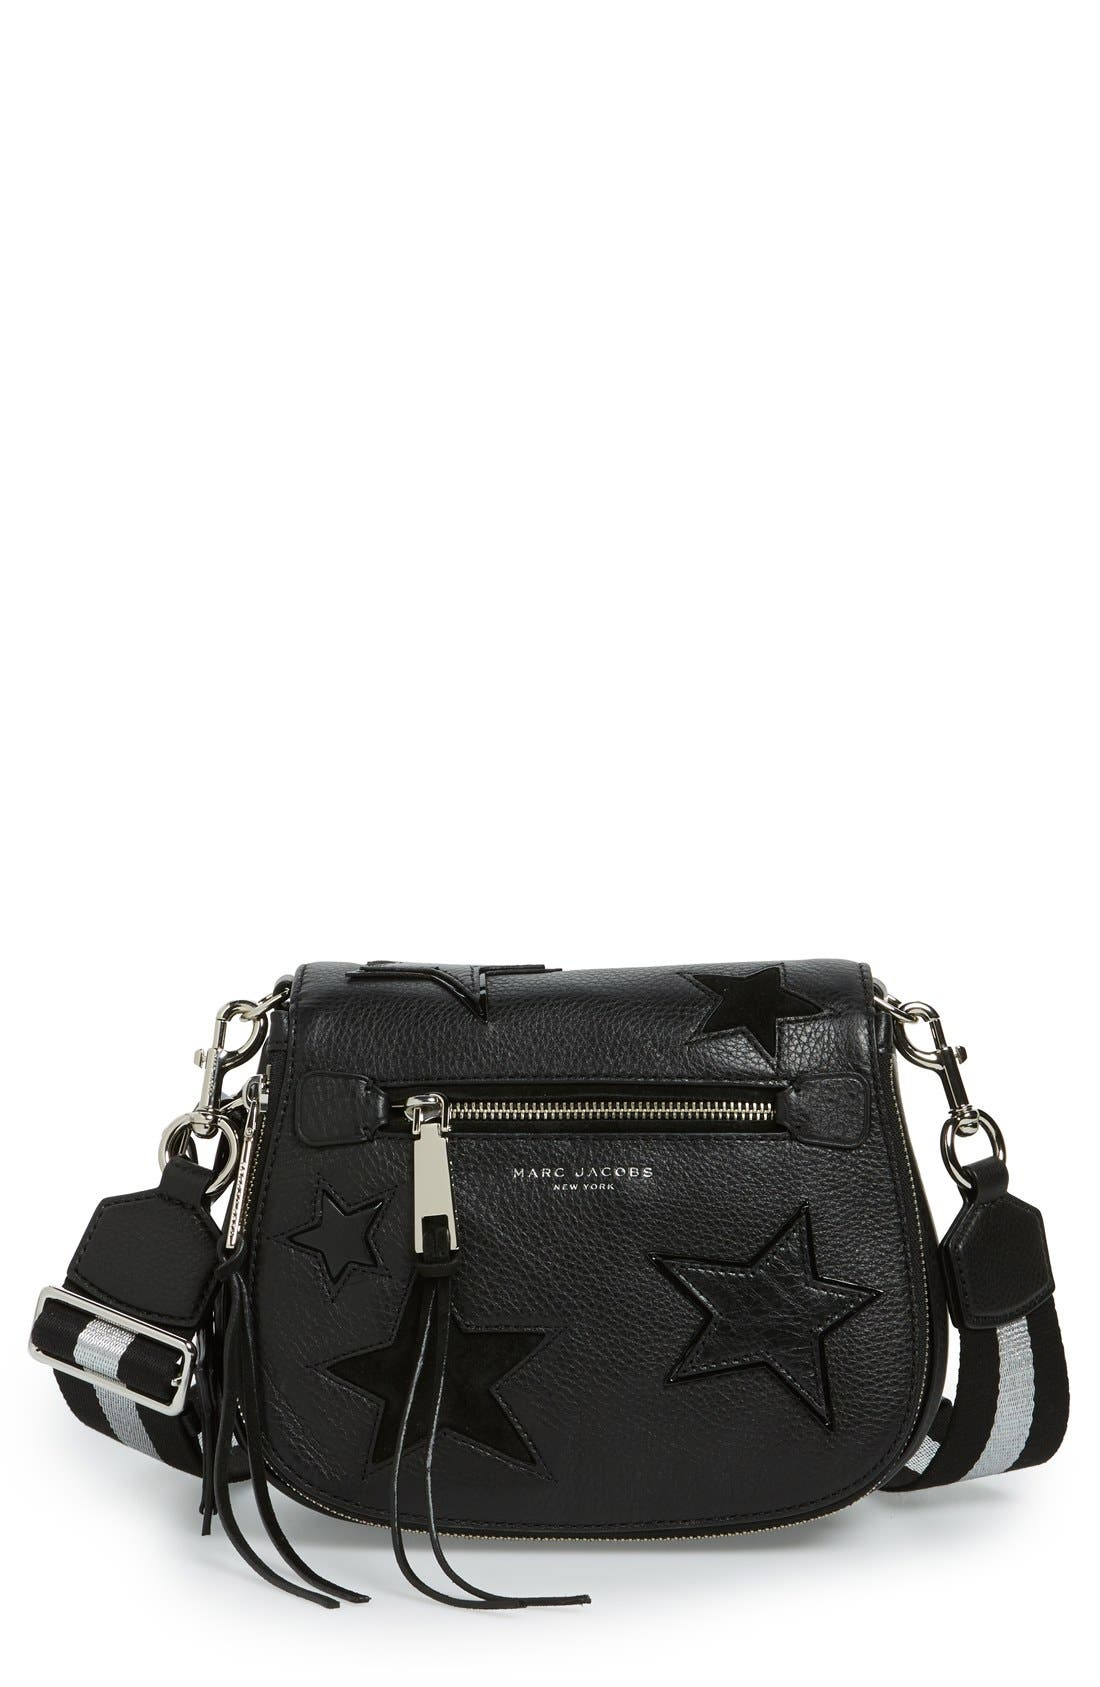 MARC JACOBS 'Star' Leather Crossbody Bag, Main, color, 002